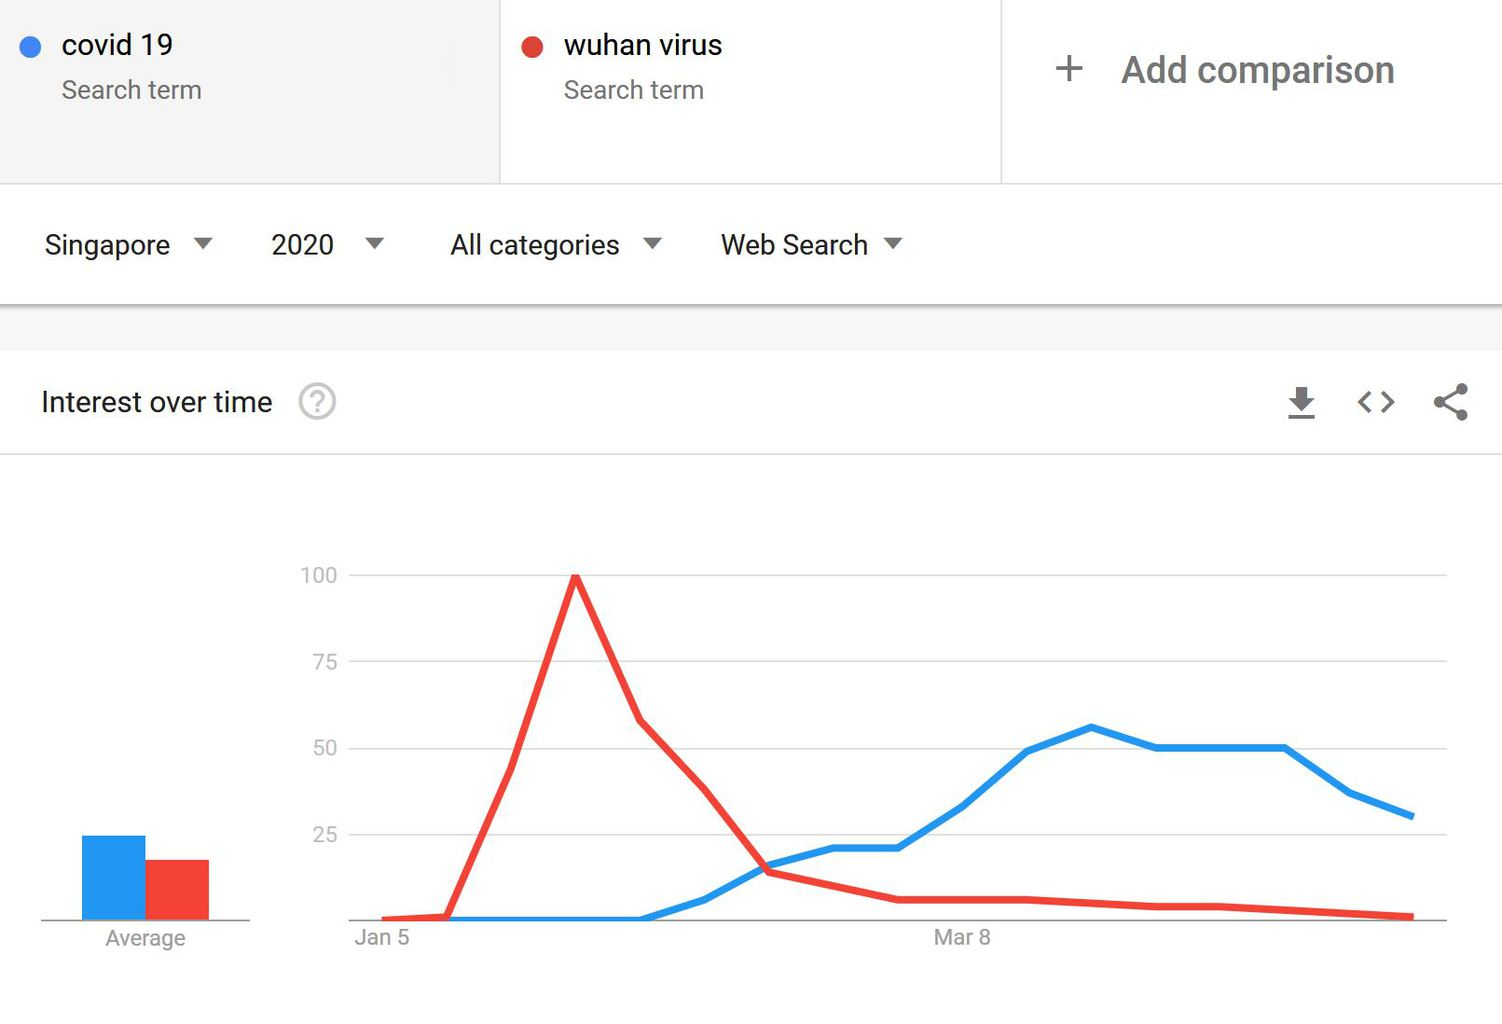 COVID vs Wuhan Google Trends Singapore 1 - COVID-19 and the 3 things I got wrong about it | Socio Empath